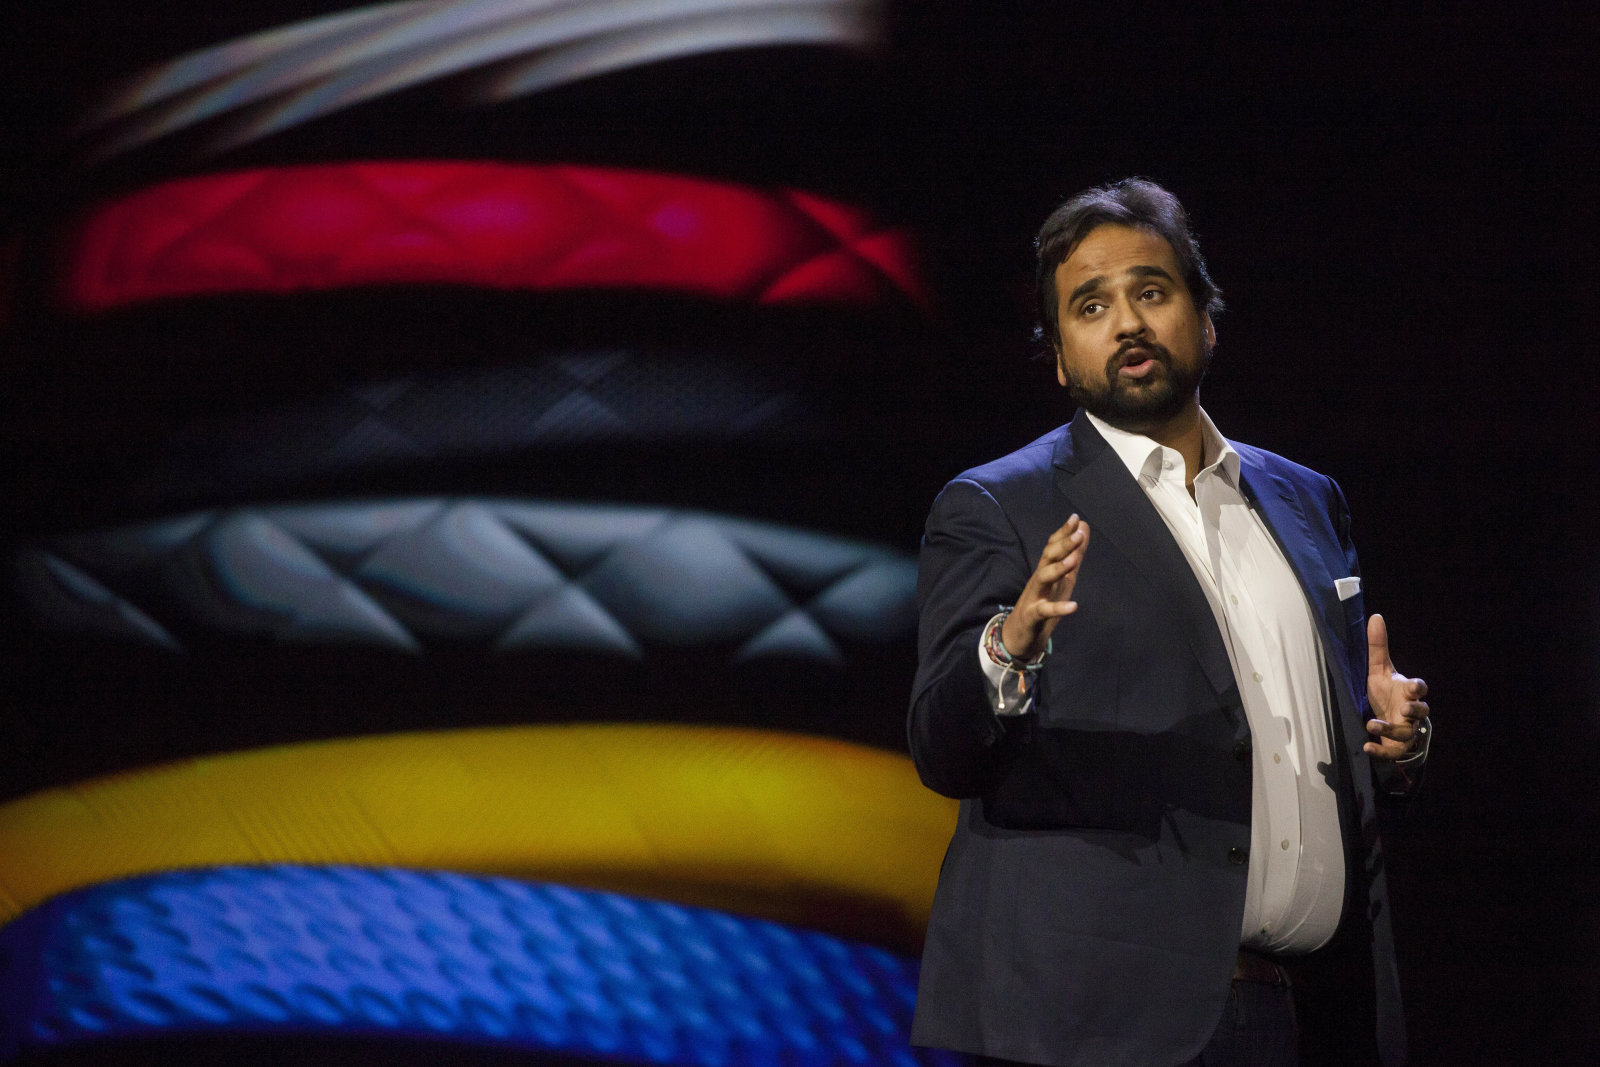 Hosain Rahman, chief executive officer of Jawbone Inc., speaks at a news conference during the 2015 Consumer Electronics Show (CES) in Las Vegas, Nevada, U.S., on Monday, Jan. 5, 2015. This year's CES will be packed with a wide array of gadgets such as drones, connected cars, a range of smart home technology designed to make everyday life more convenient and quantum dot televisions, which promise better color and lower electricity use in giant screens. Photographer: Michael Nagle/Bloomberg via Getty Images